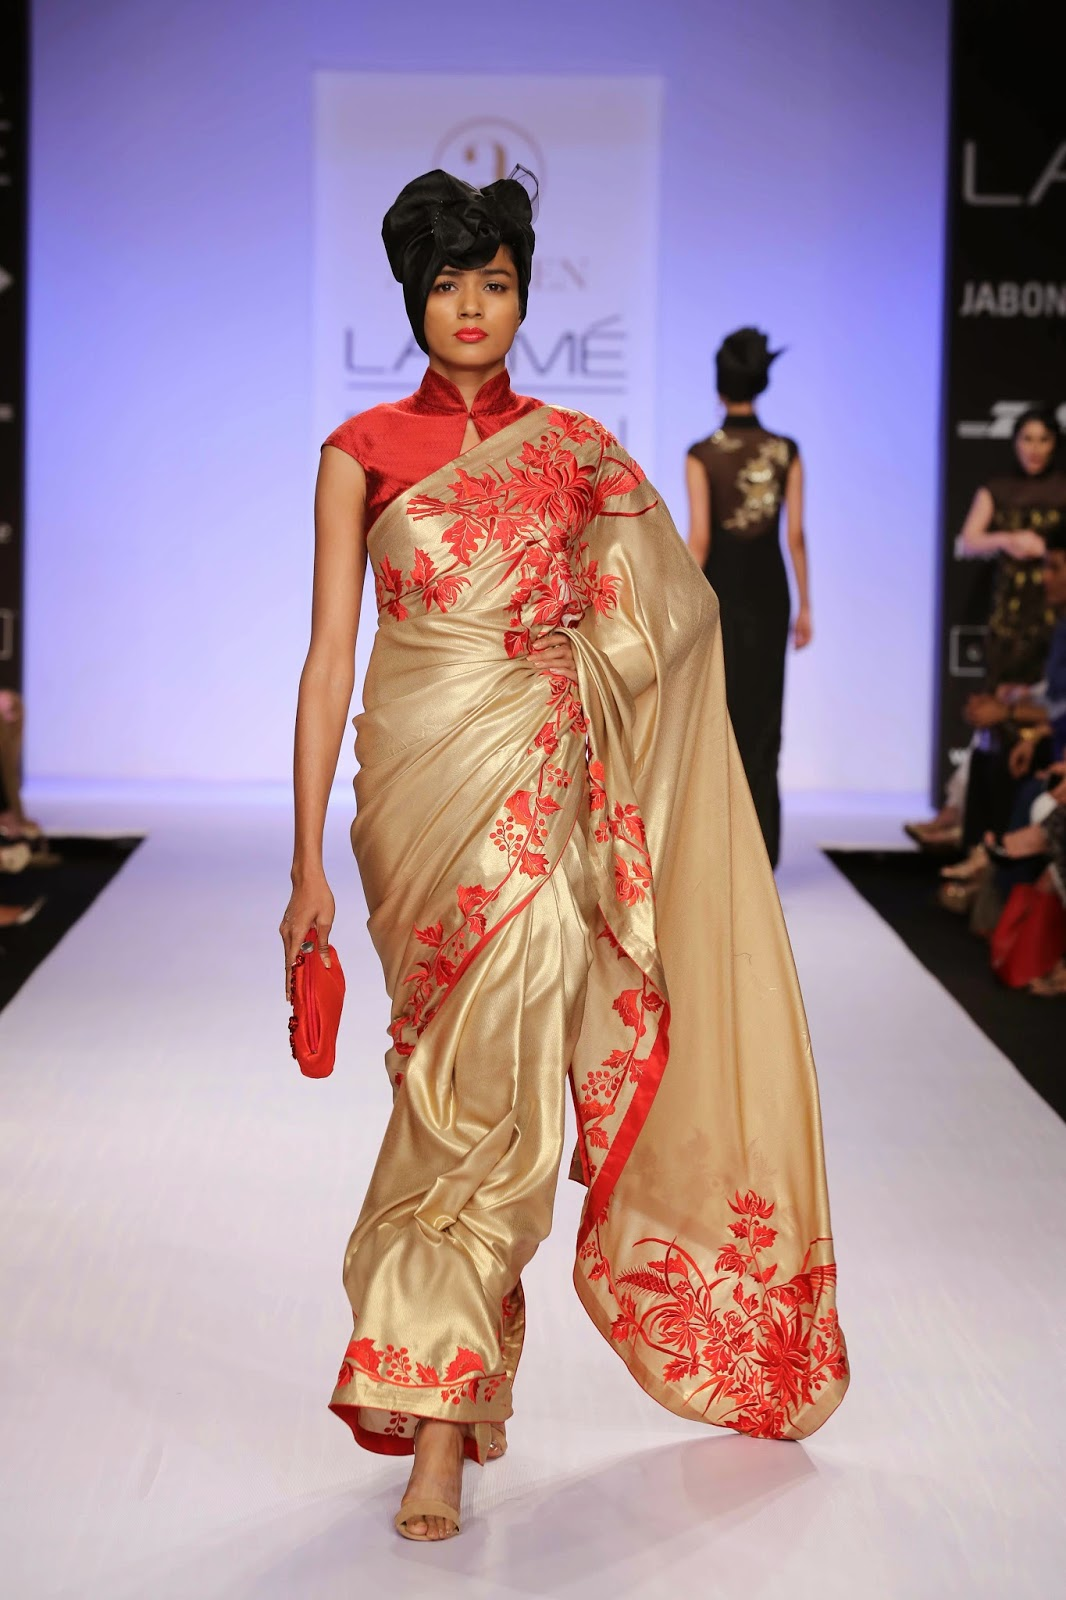 Silver pants with net layers were worn with sheer blouse, while a red sari with a majestic gold peacock on the pallav was gorgeous. The final black lace gown with shimmering sequins and multicoloured roses down the front was a superb end to a show of great elegance, style and innovative embellishment placements.